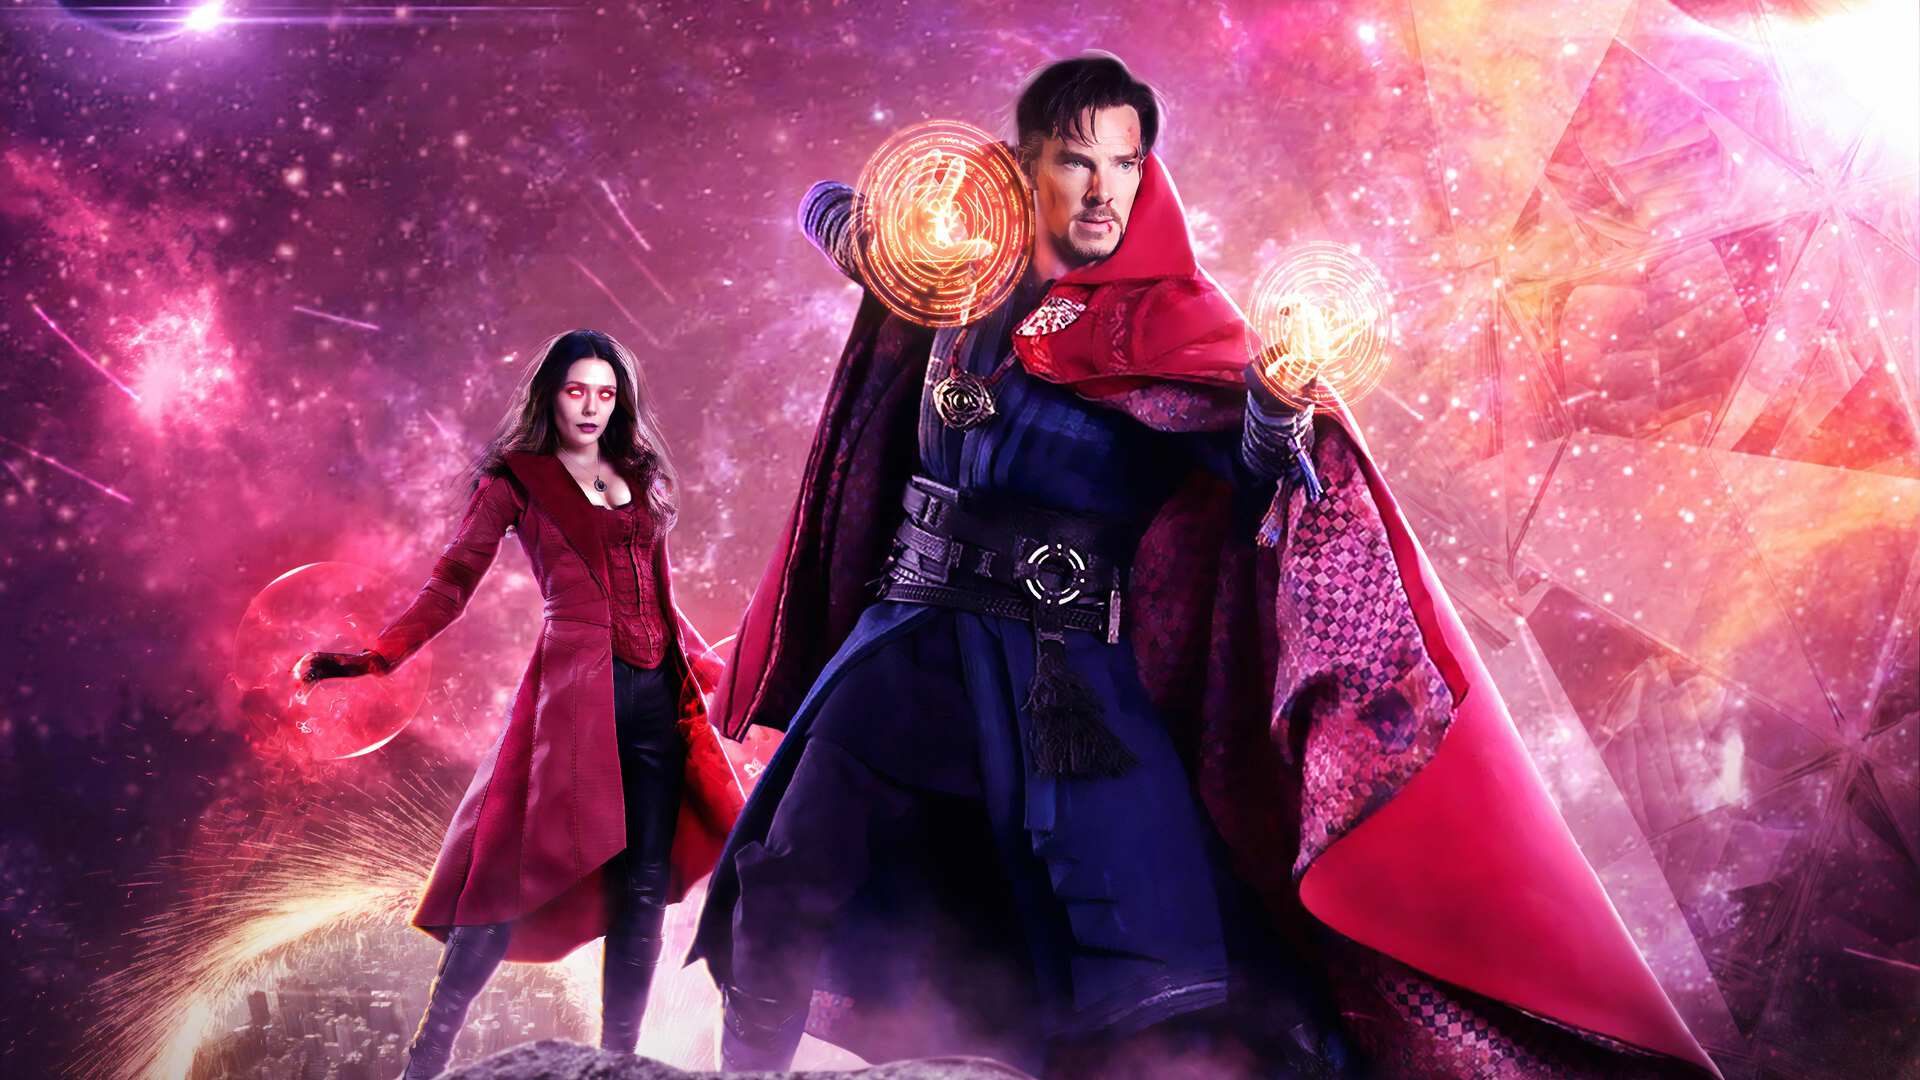 WandaVision Finale will lead to Doctor Strange in the Multiverse of Madness